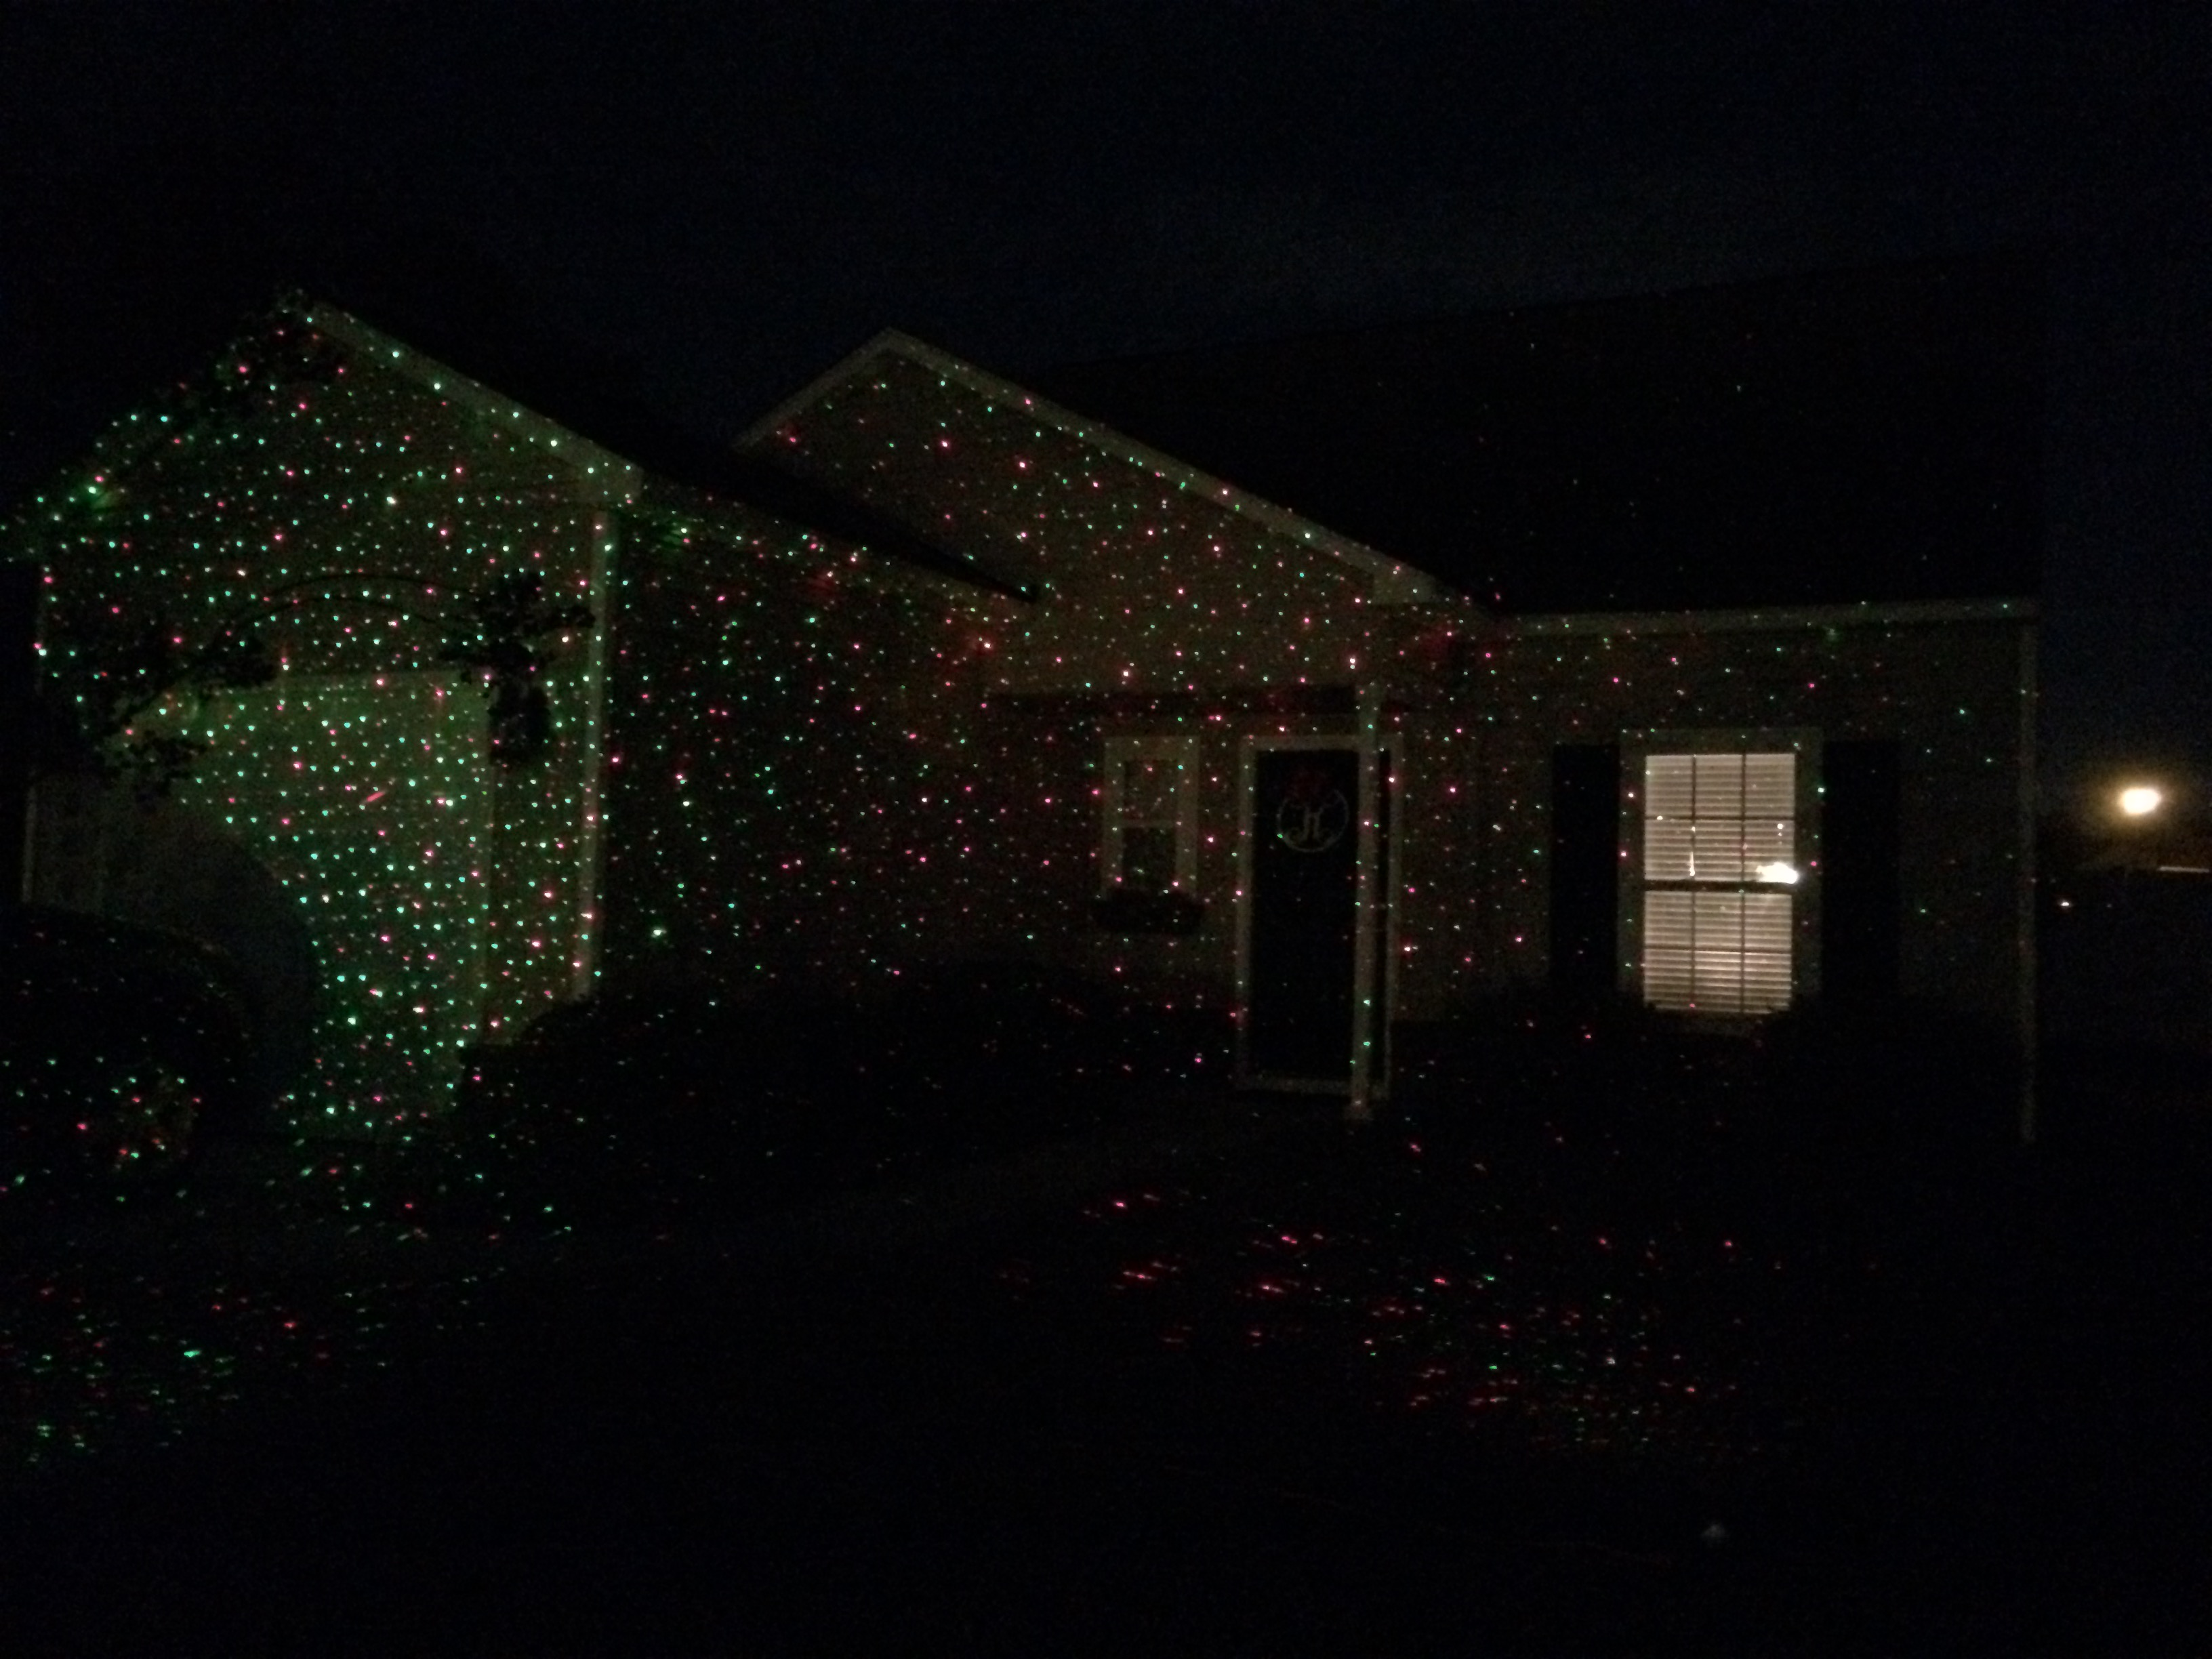 I think our house looks pretty good with the laser lights. Thanks David and Robin!